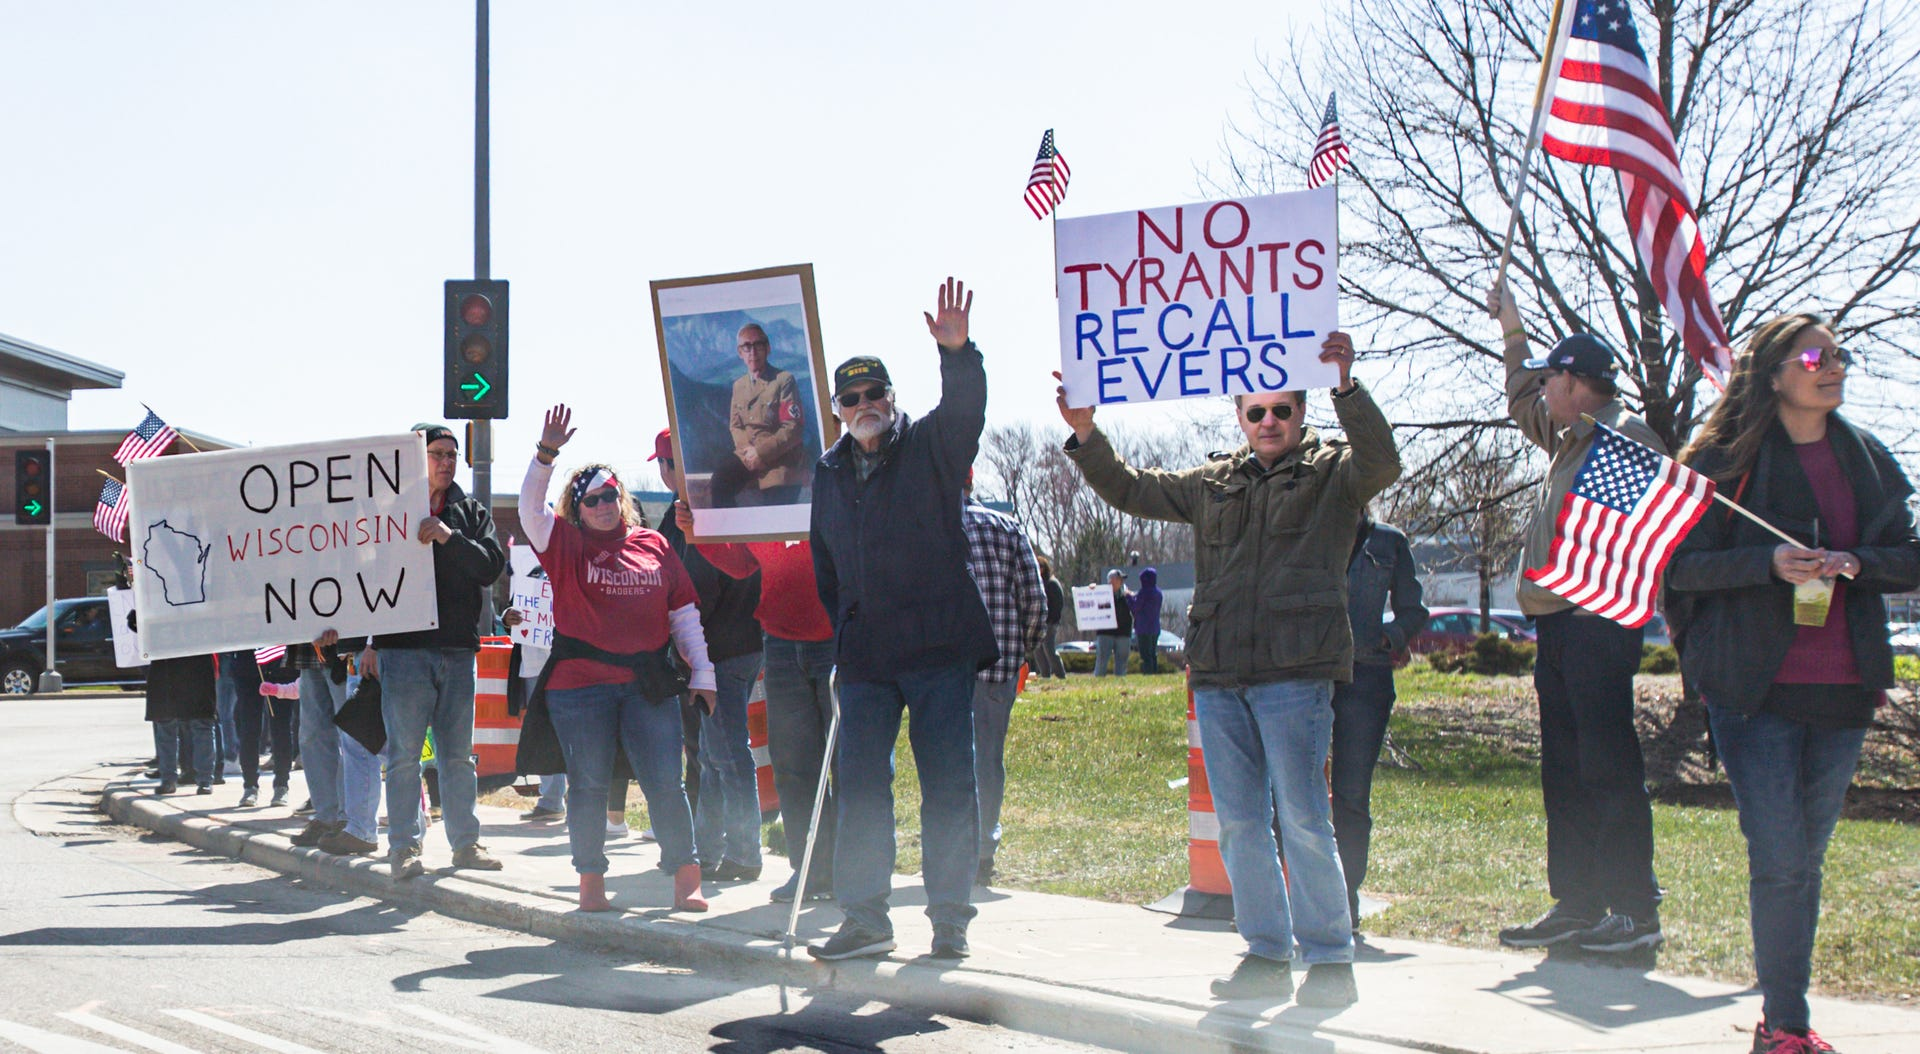 Demonstrators wave flags and hold signs for passing motorists on West Bluemound Rd. in front of Brookfield Square shopping mall on Saturda. The gathering was a protest of Gov. Tony Evers' decision to extend the stay-at-home order through May 26.